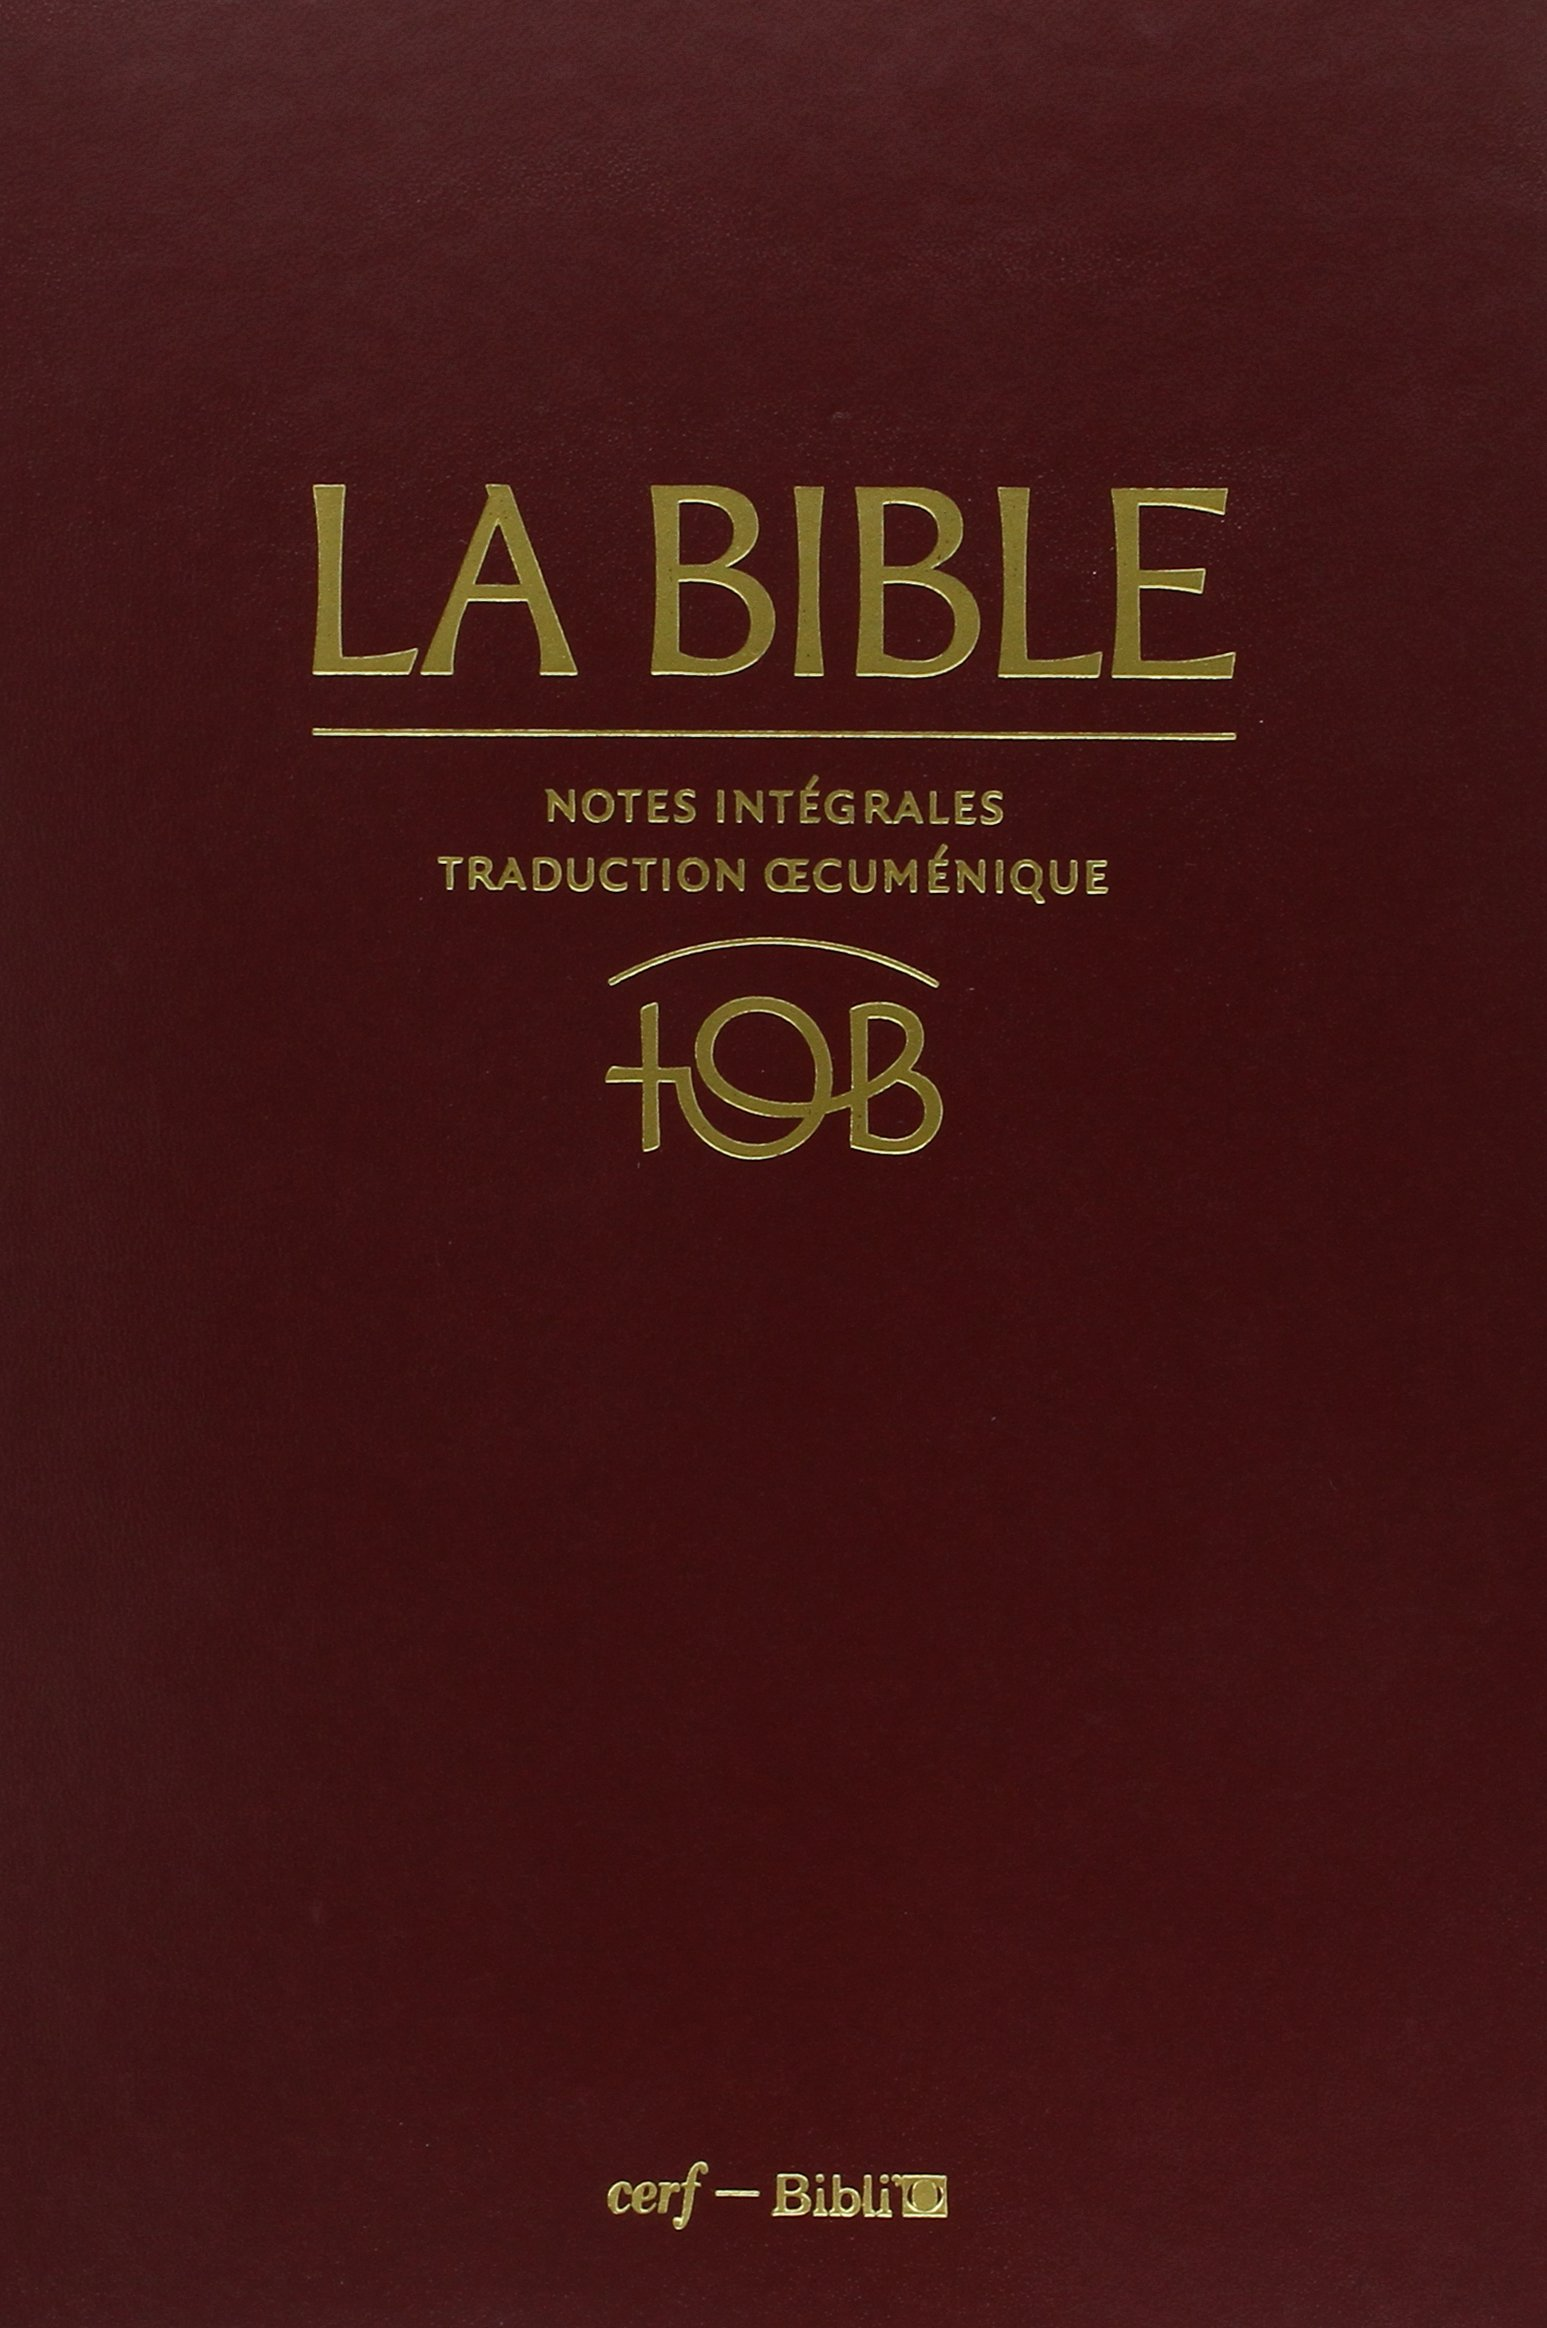 la bible tob en audio